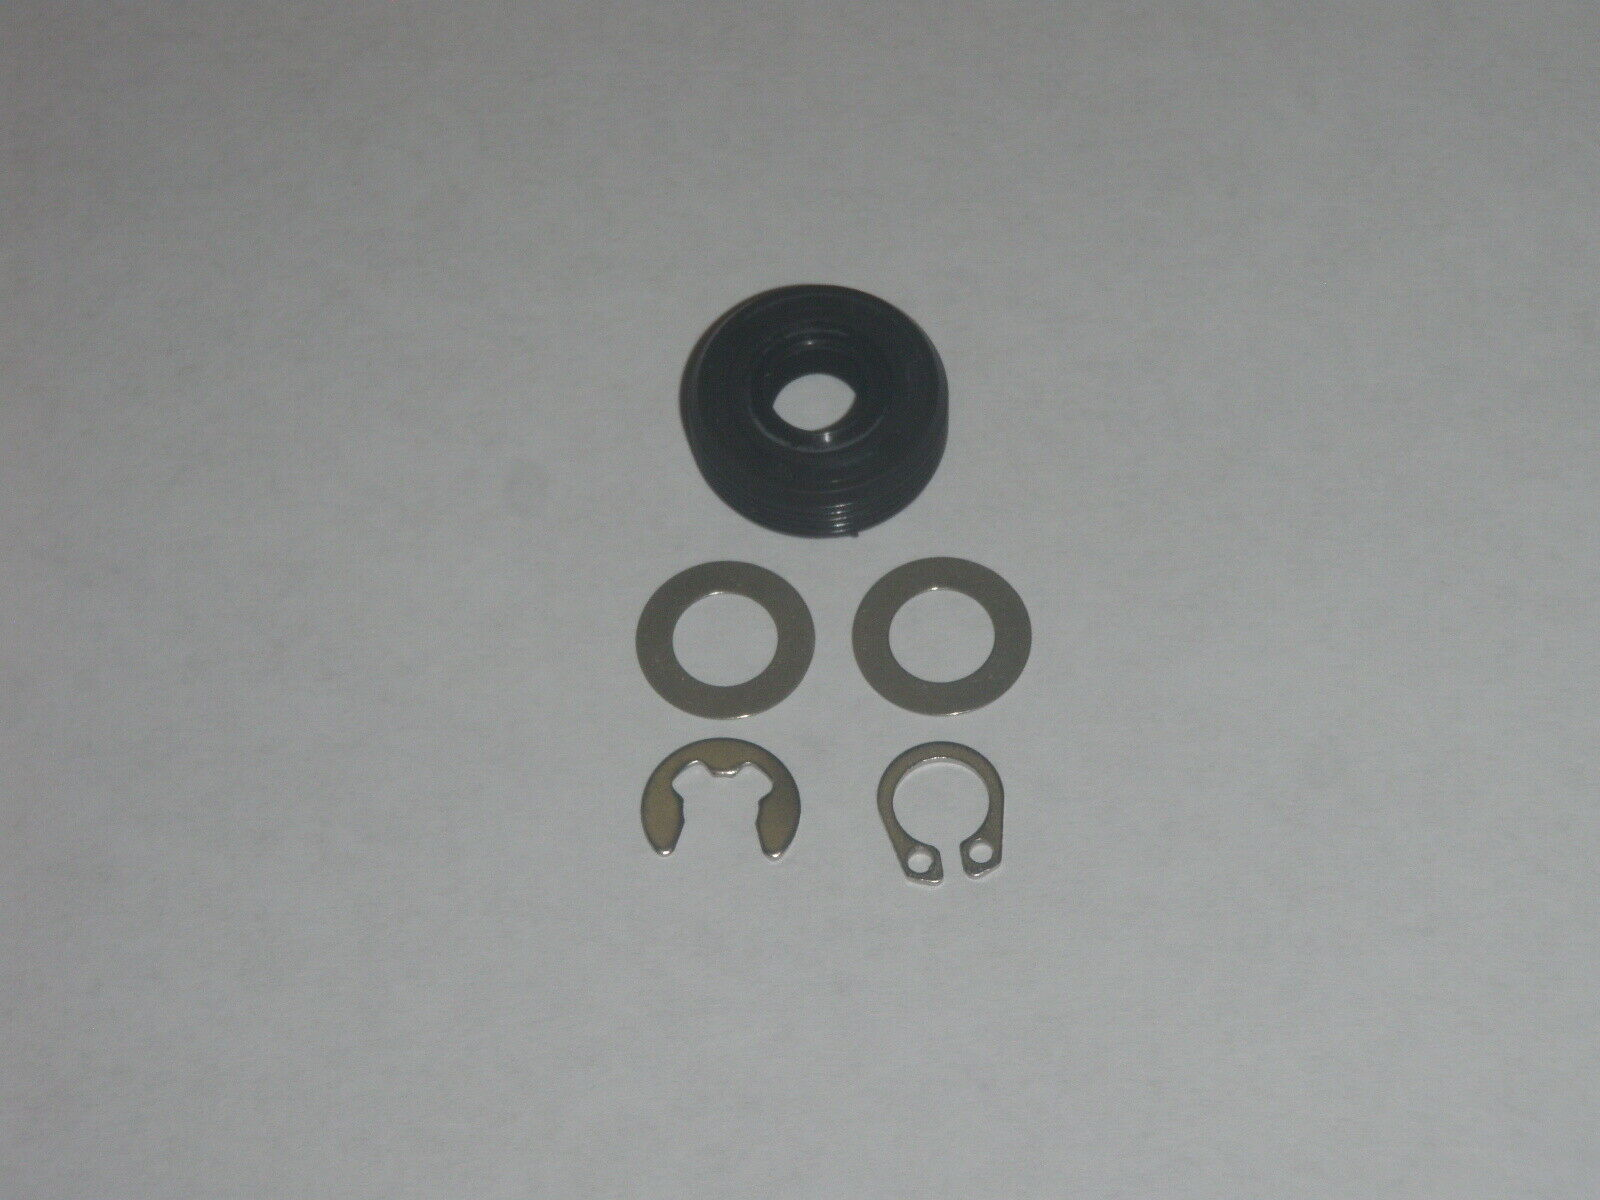 Williams Sonoma Bread Maker Heavy Duty Pan Seal Kit for Model WS0401 (8MKIT-HD)  image 3